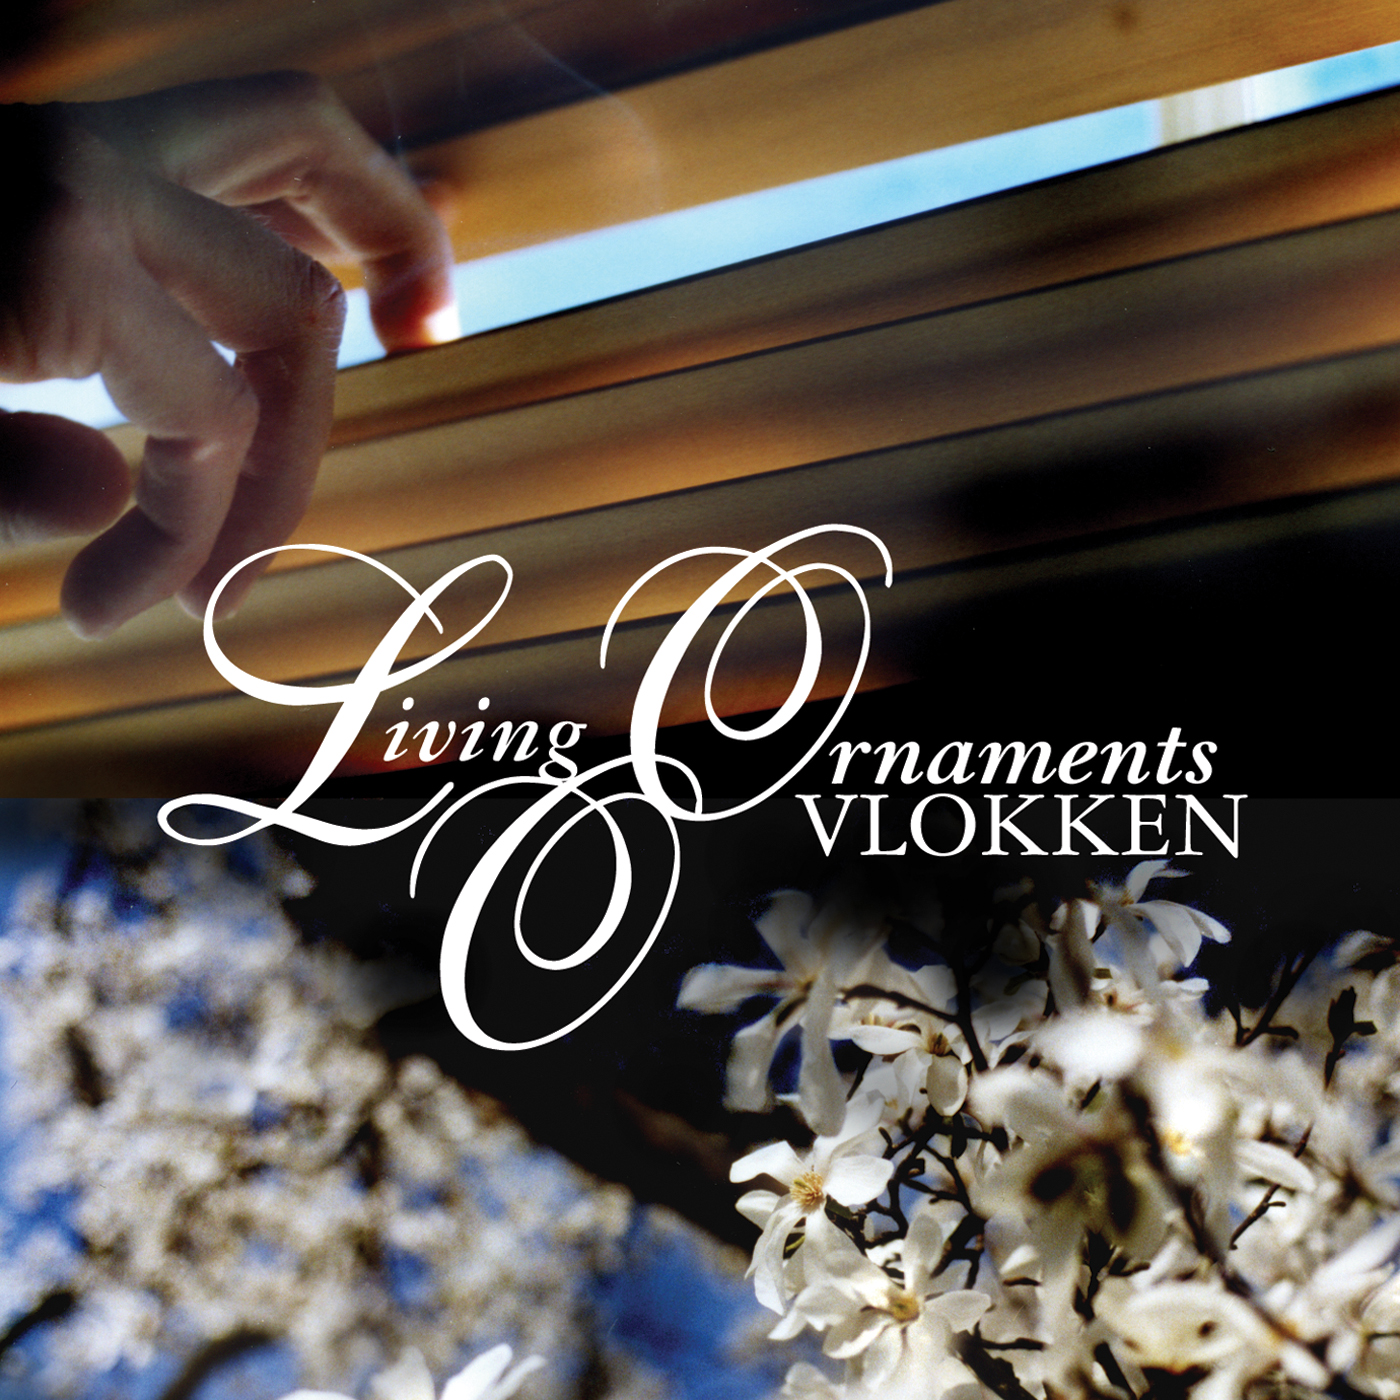 NM017: living ornaments - vlokken